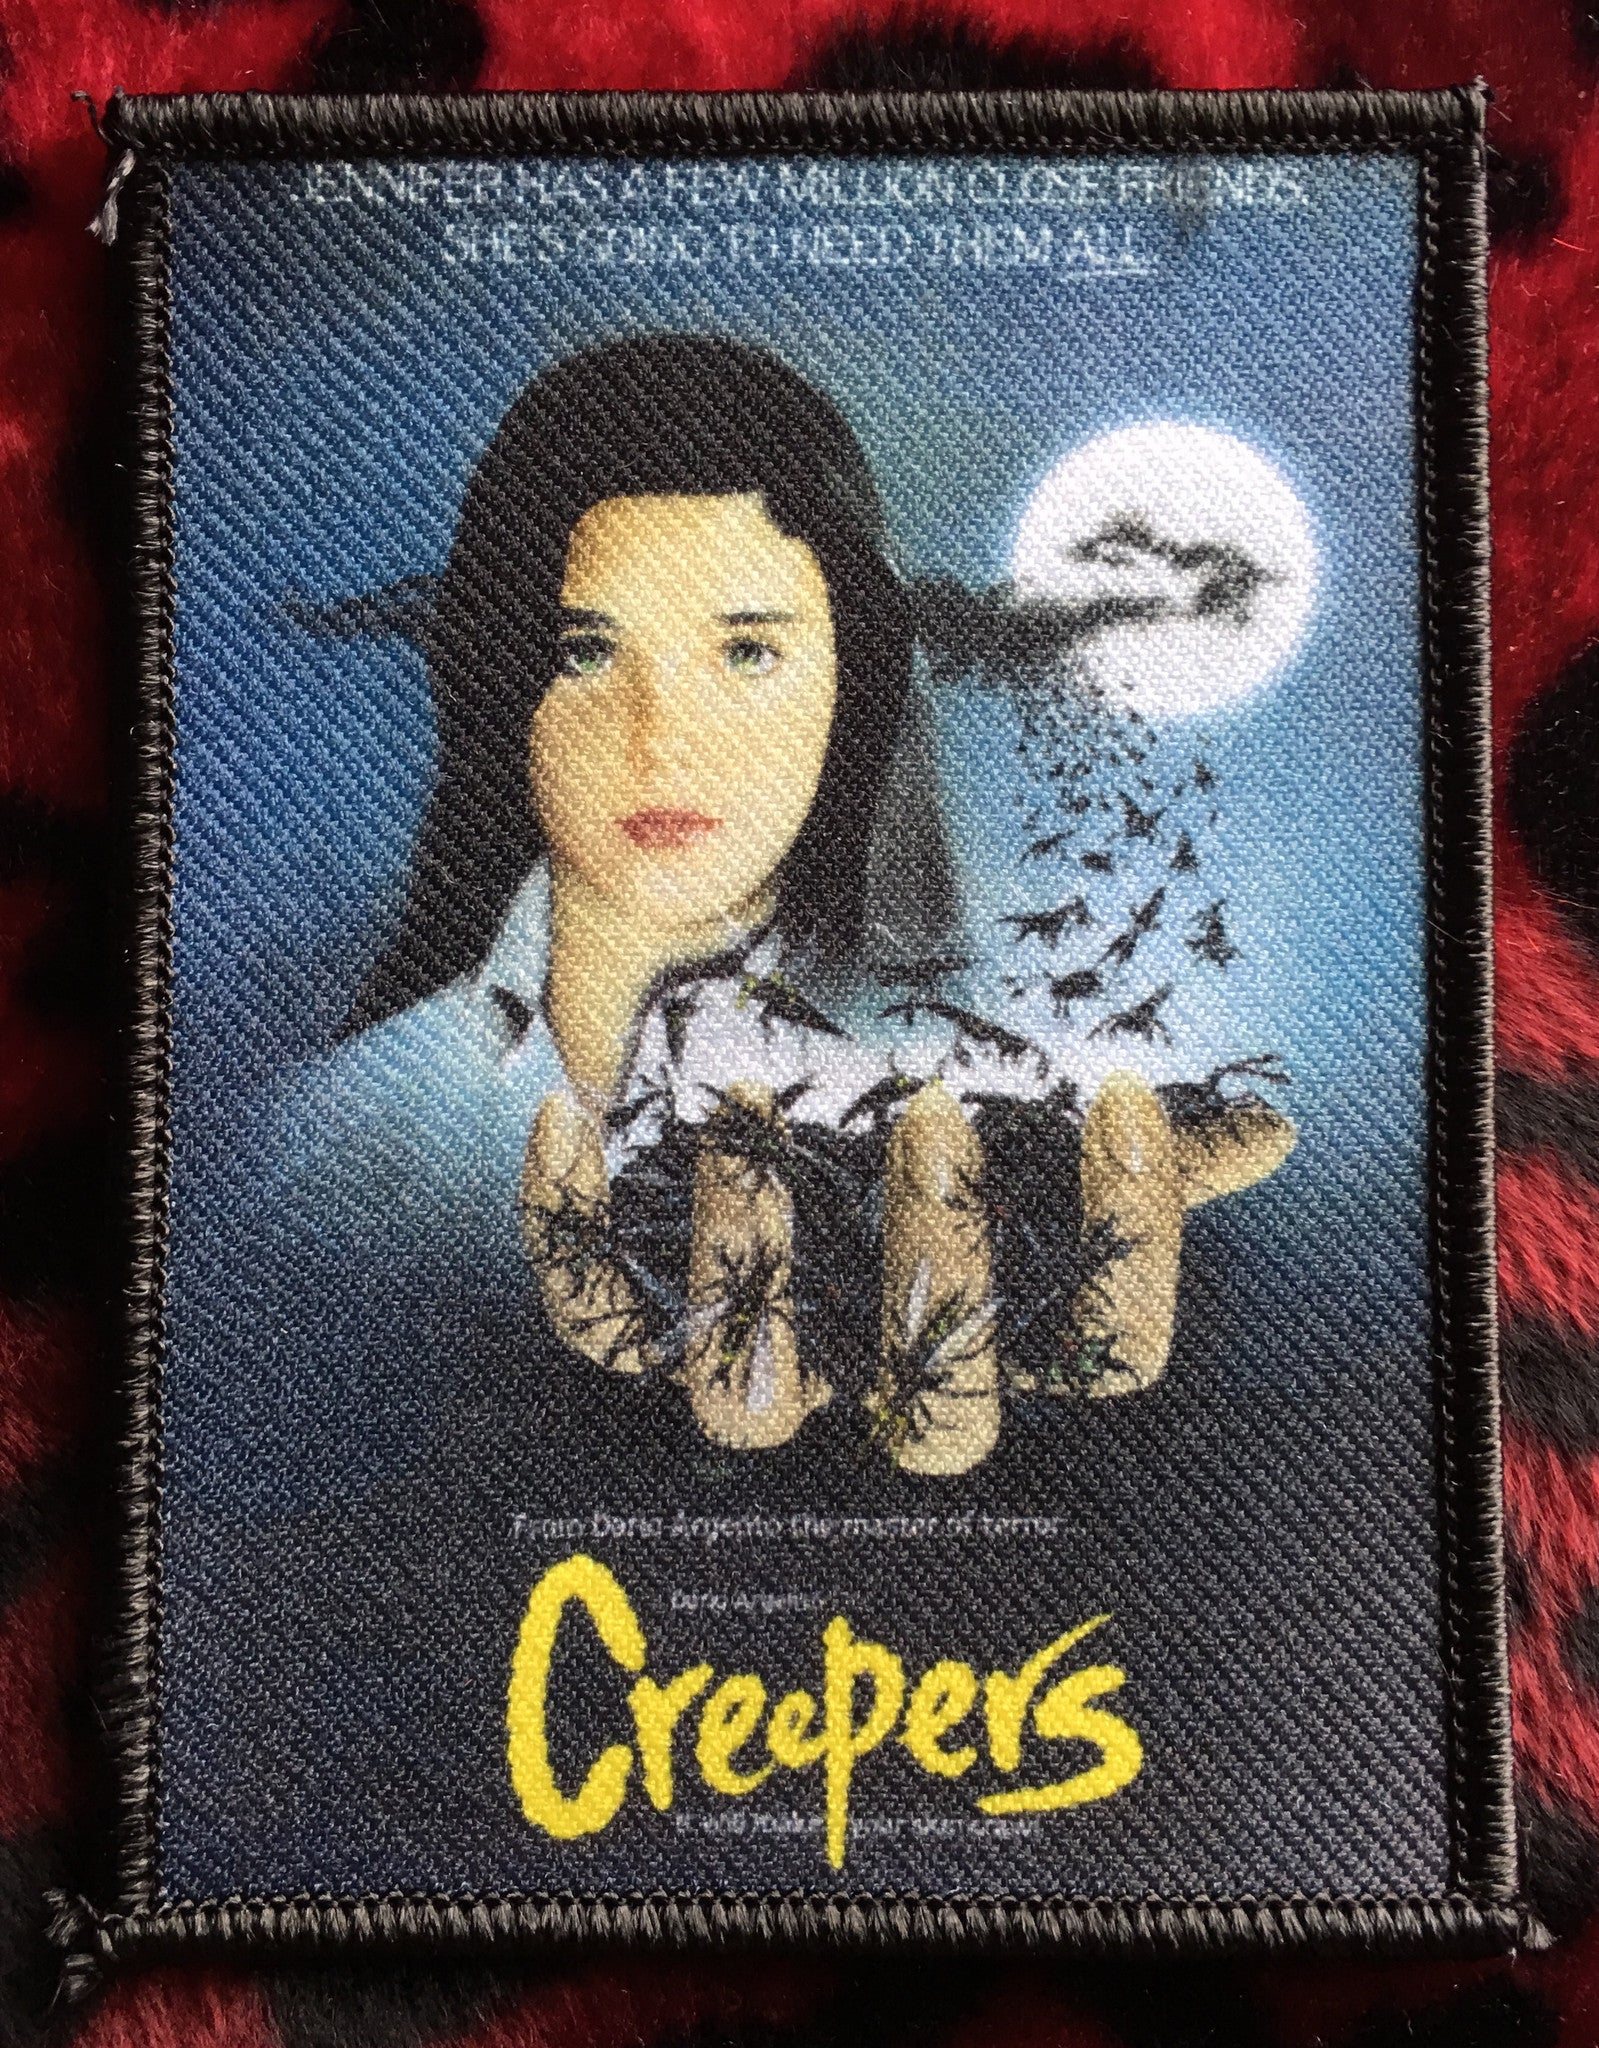 Creepers Patch